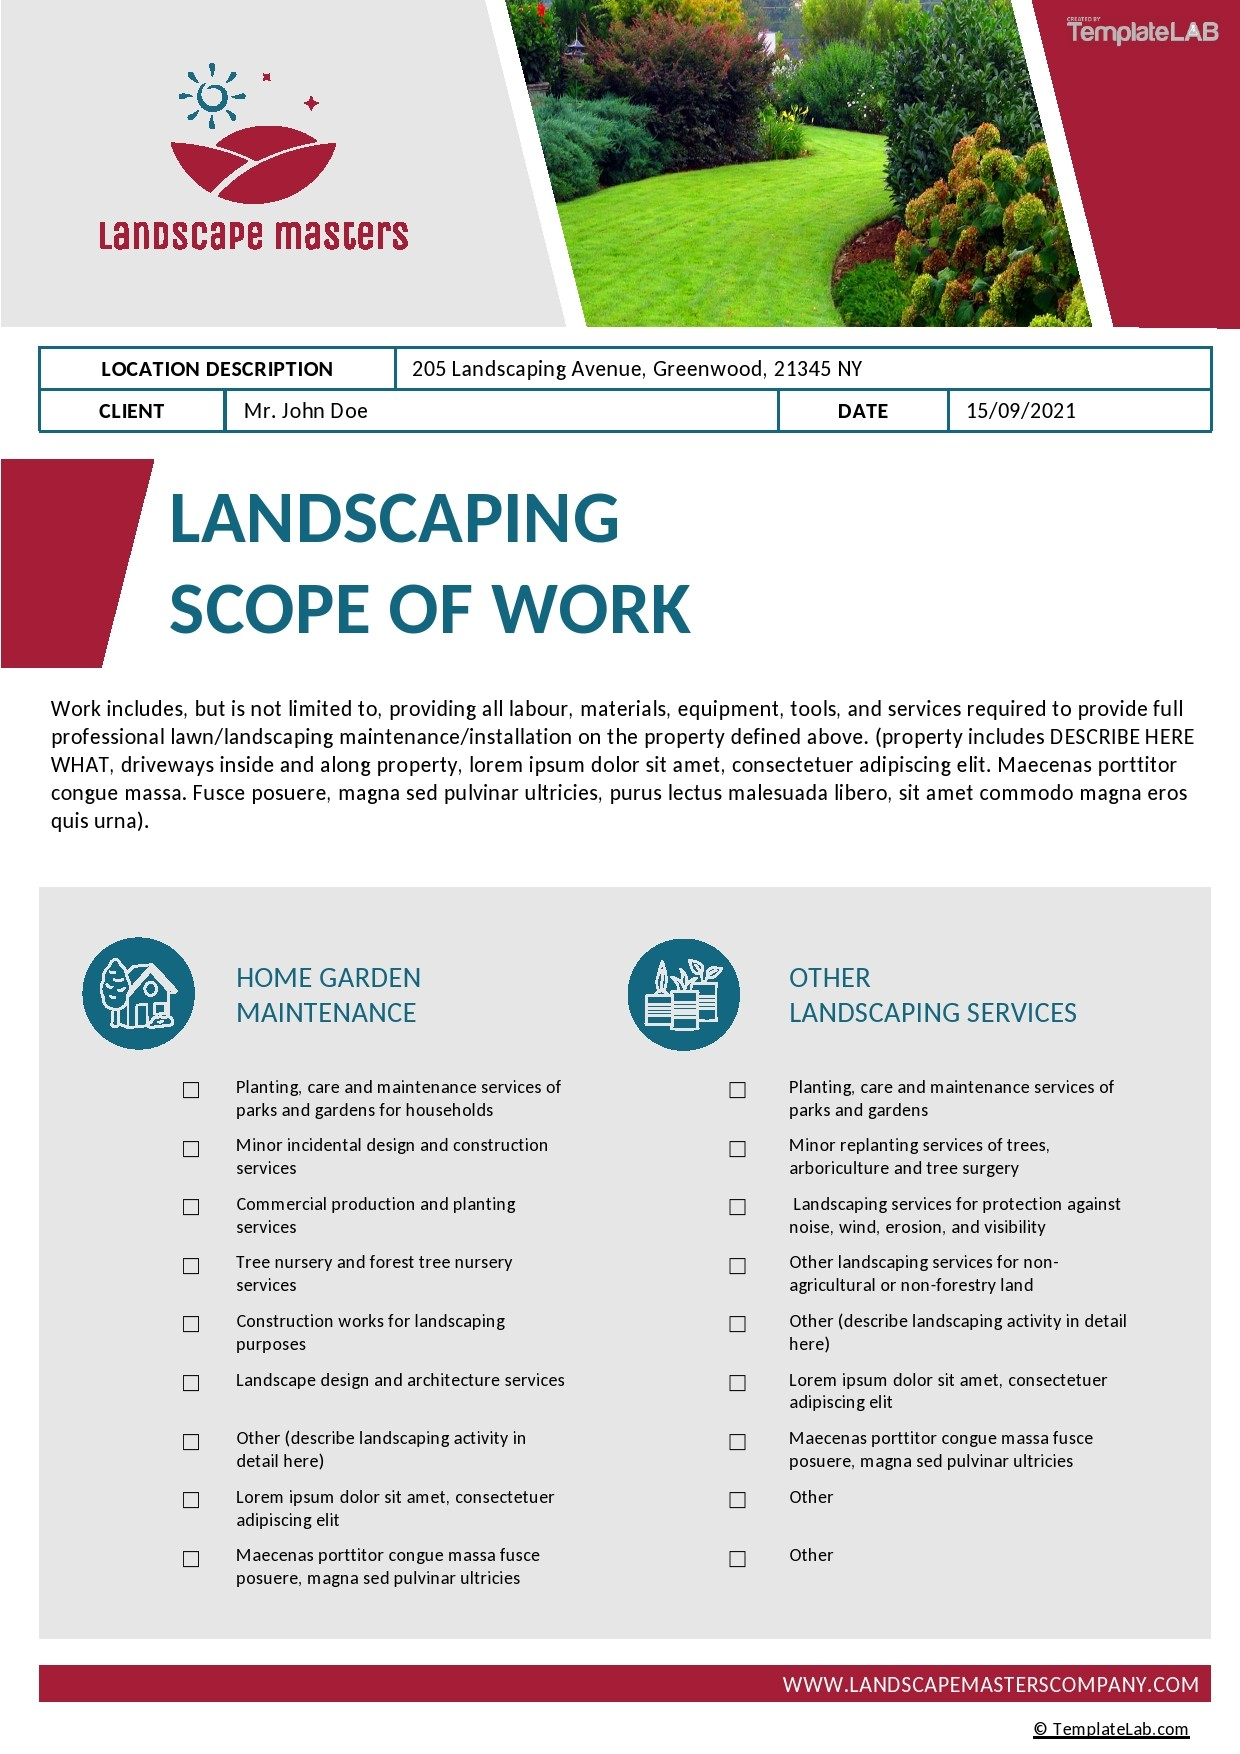 Free Landscaping Scope of Work Template - TemplateLab.com